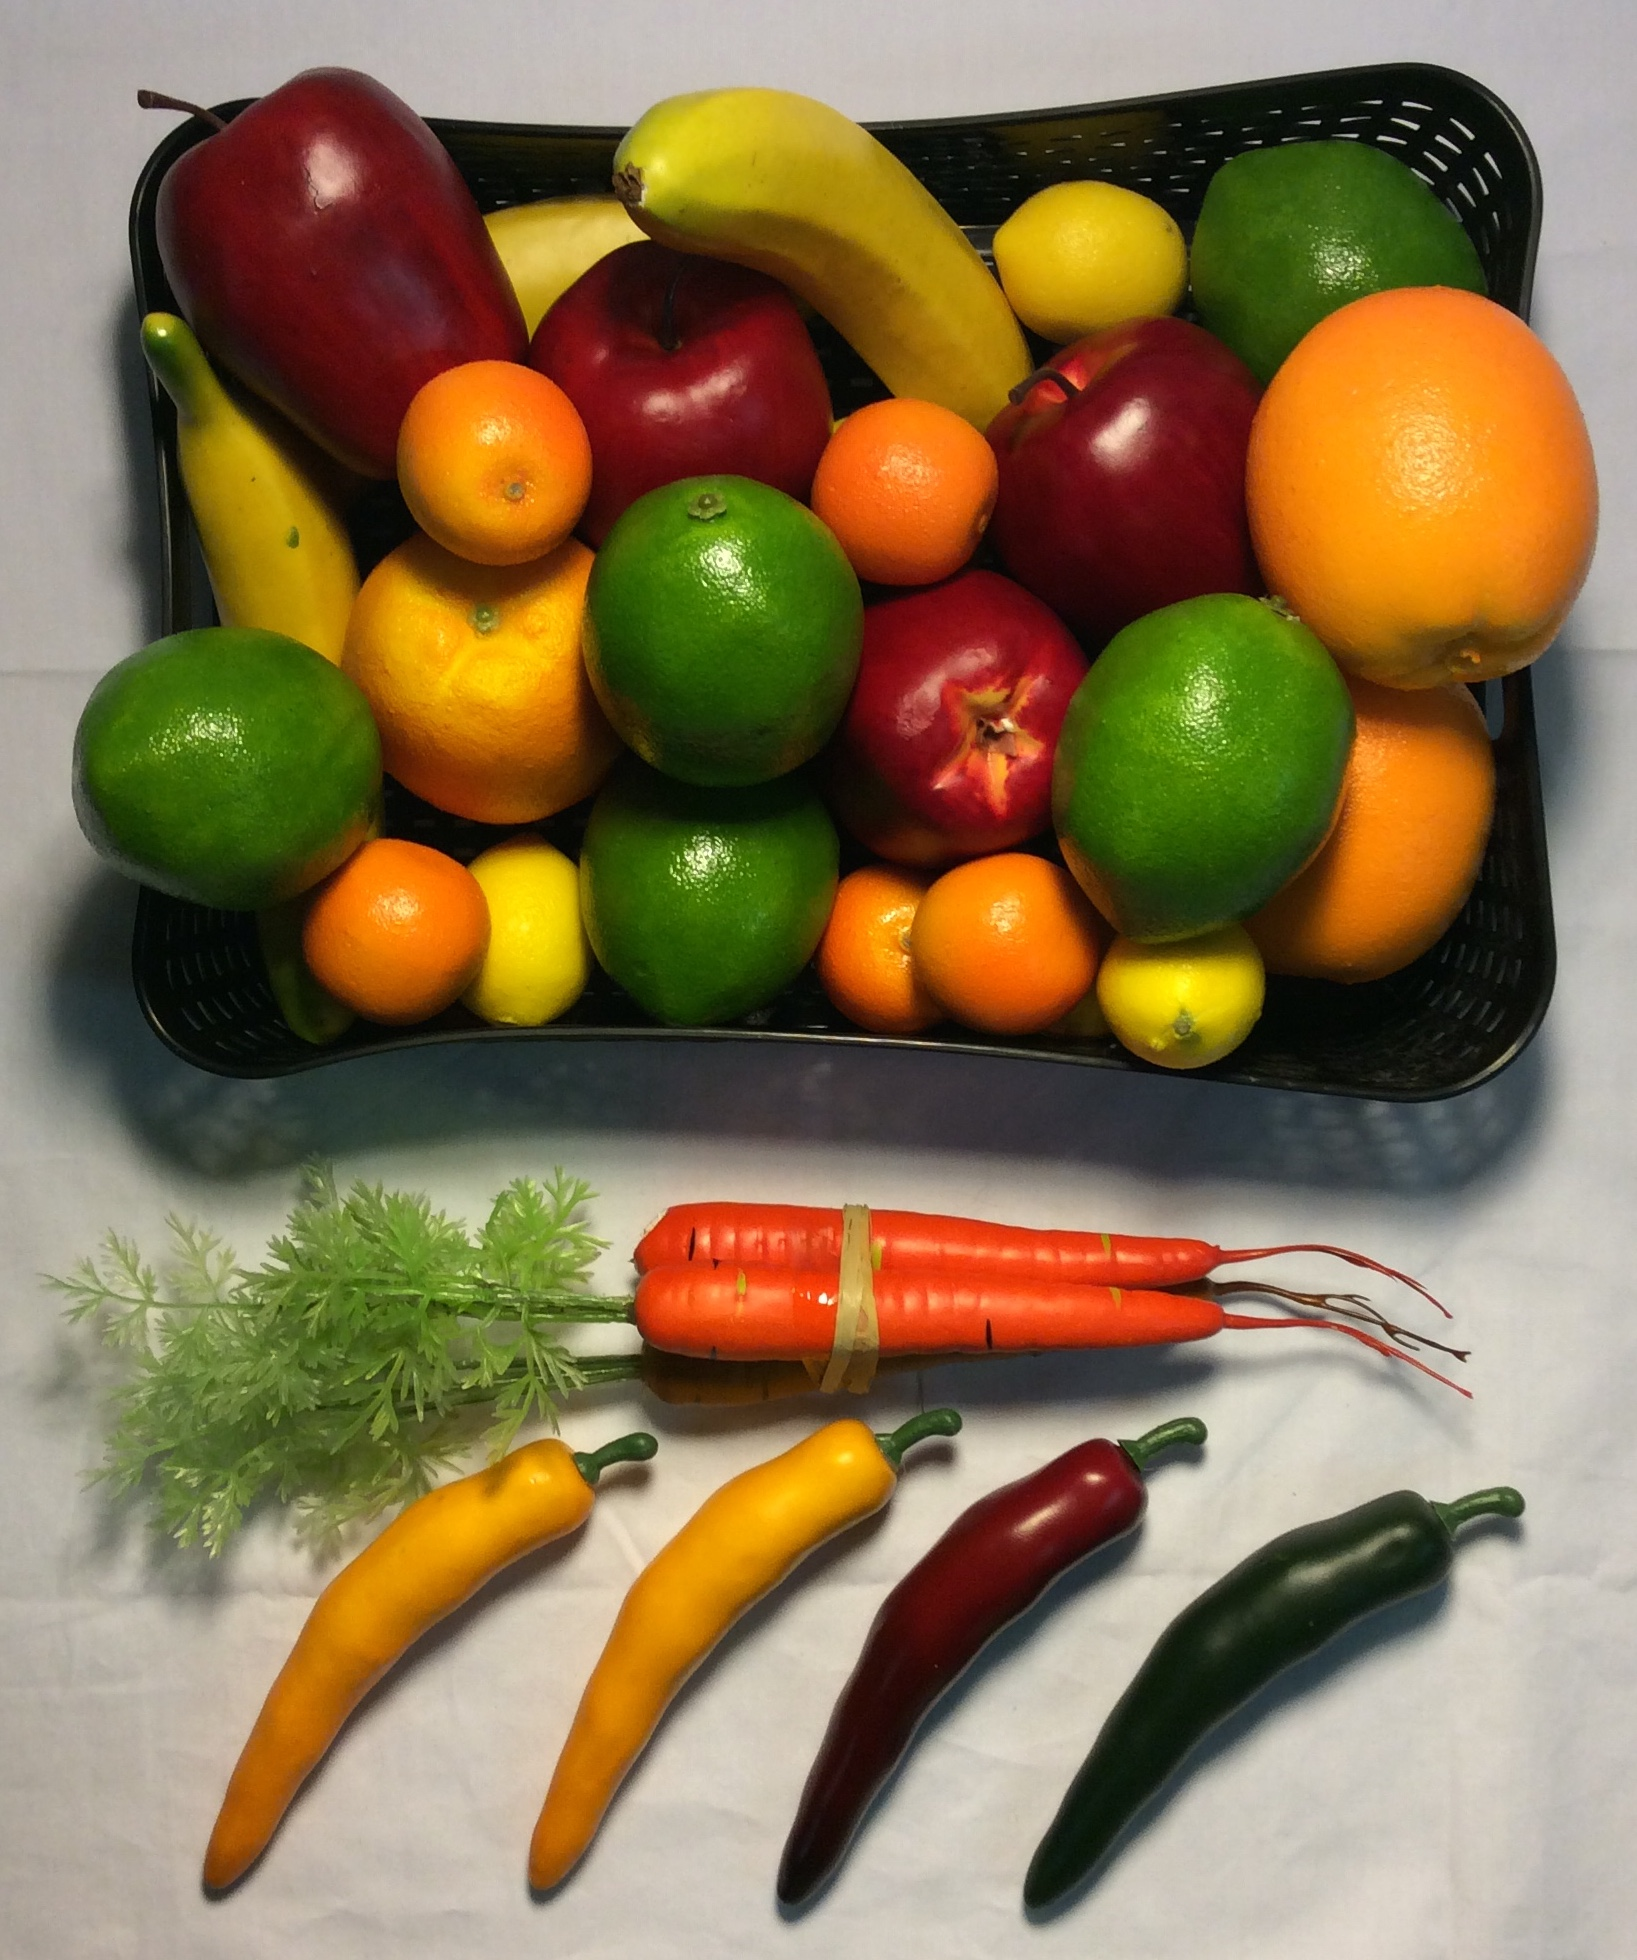 Misc. plastic fruit & veggies